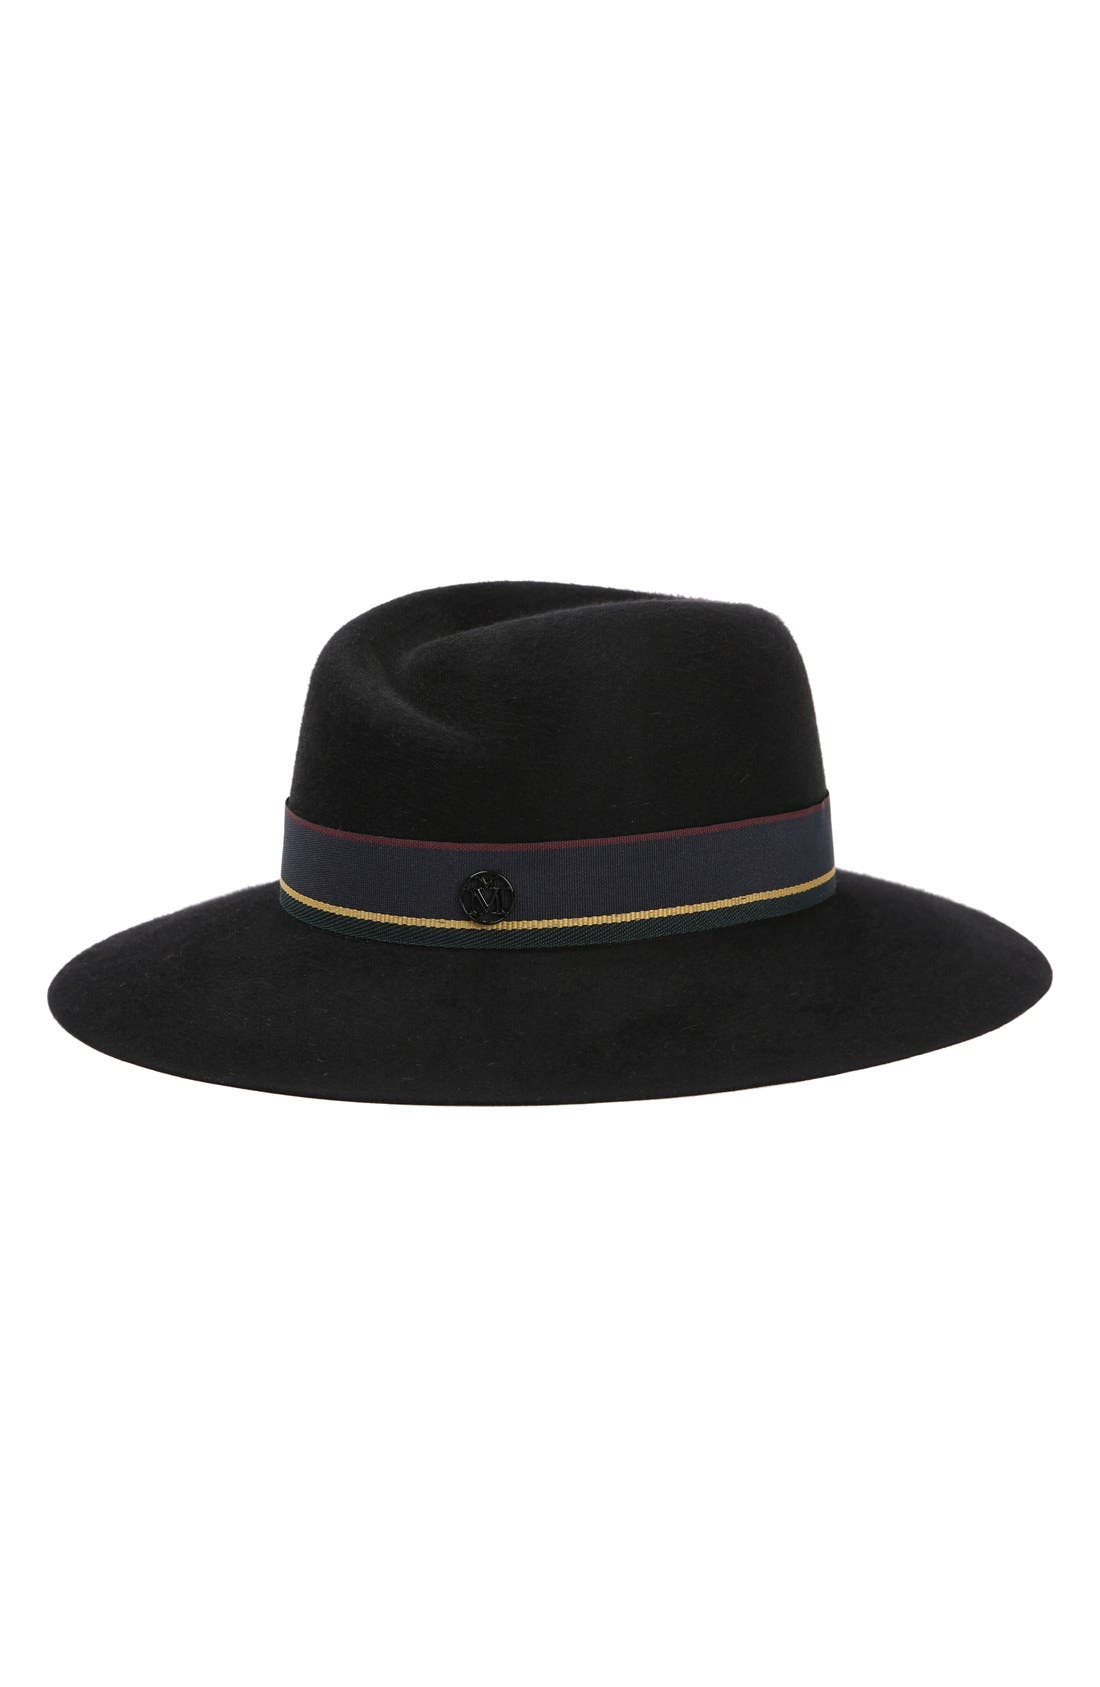 Maison Michel Virginie Fur Felt Hat